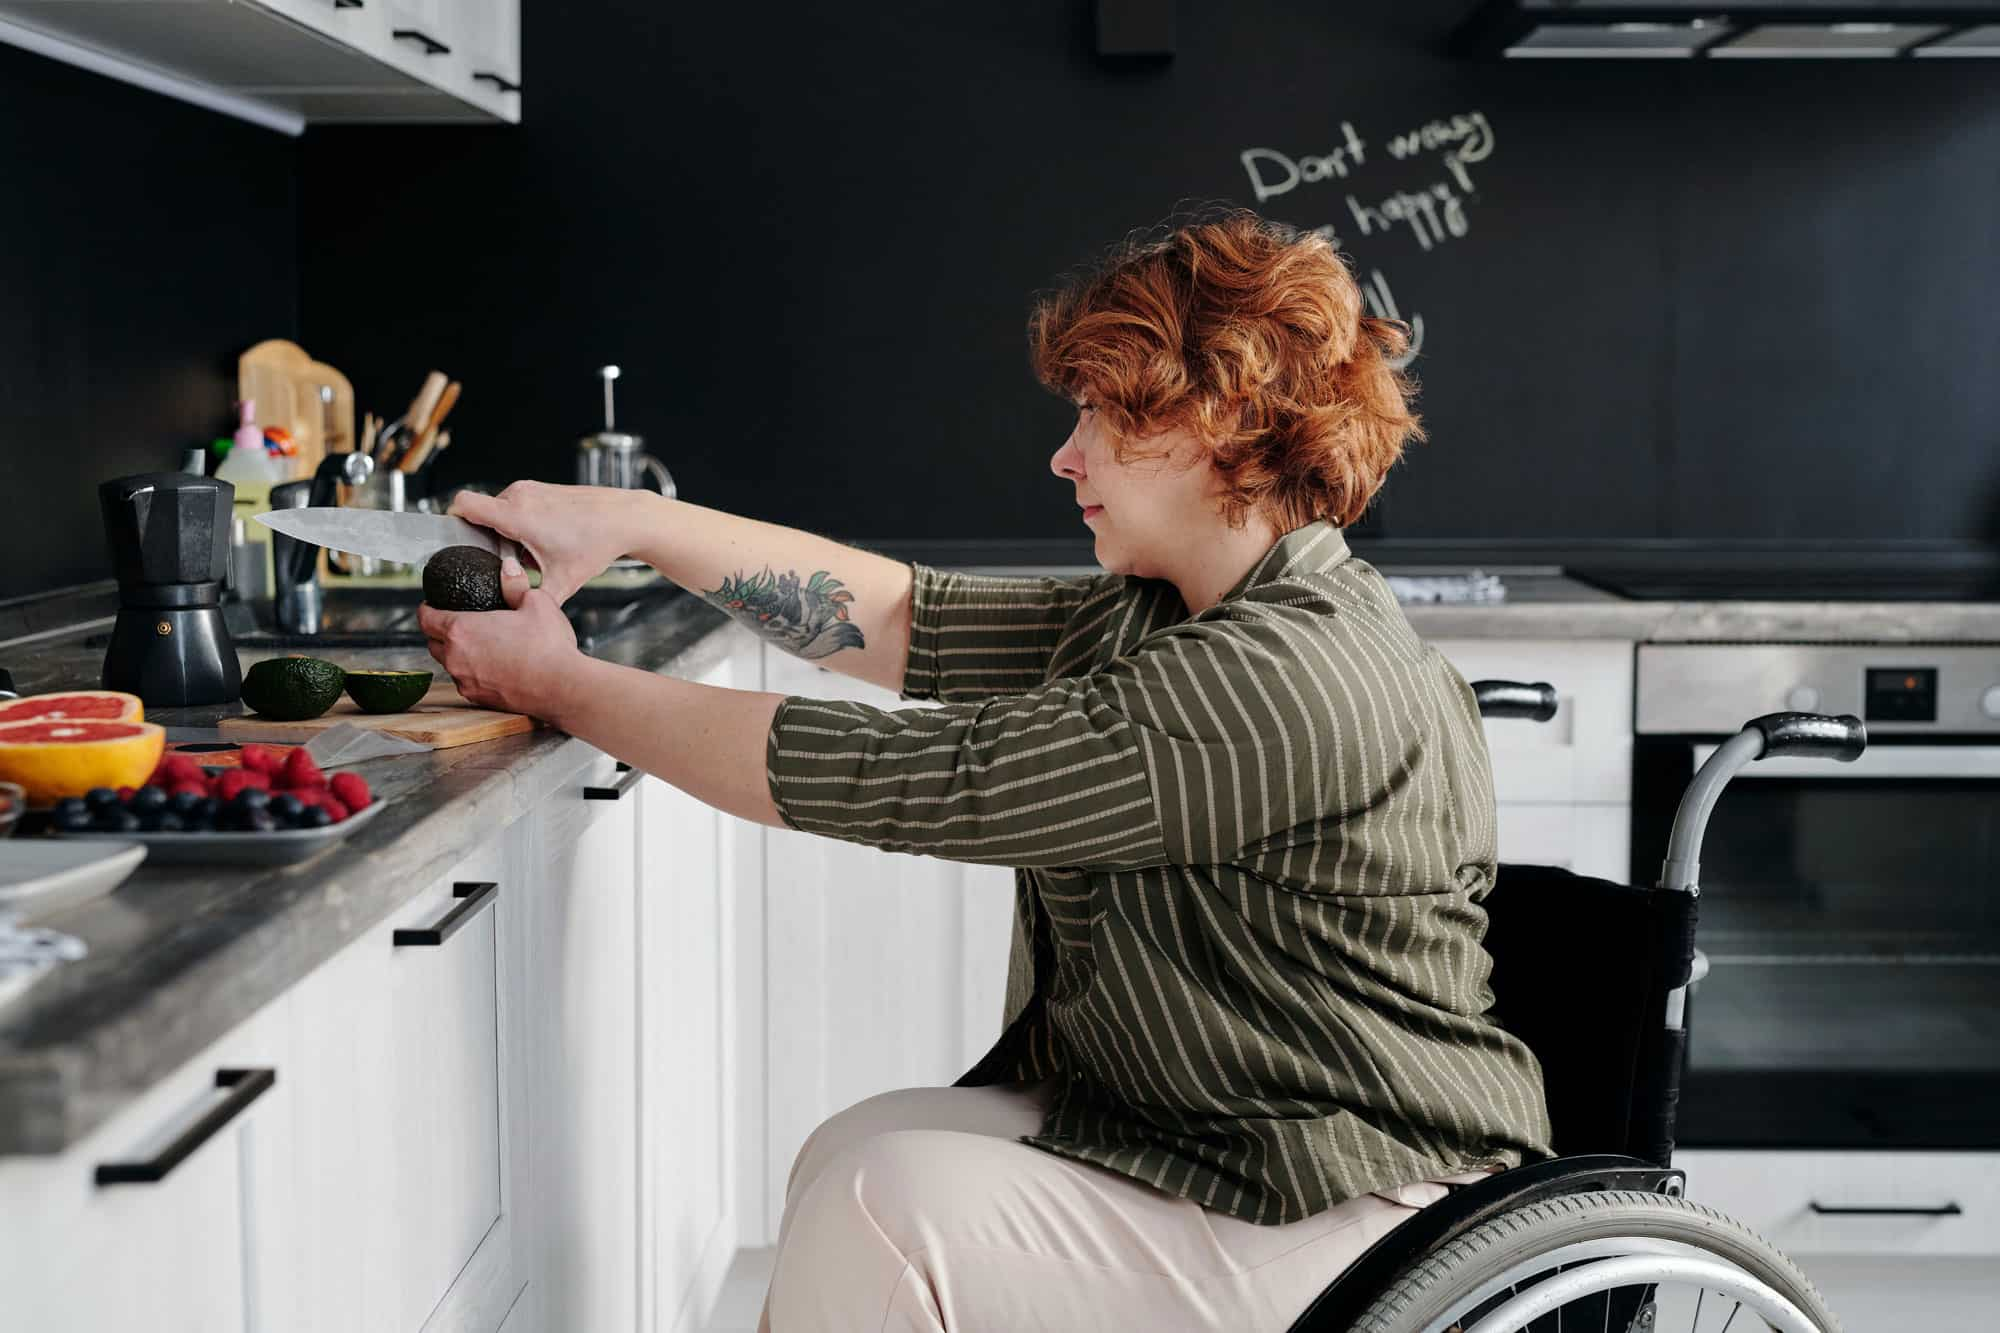 Self-Care woman in wheelchair cooking